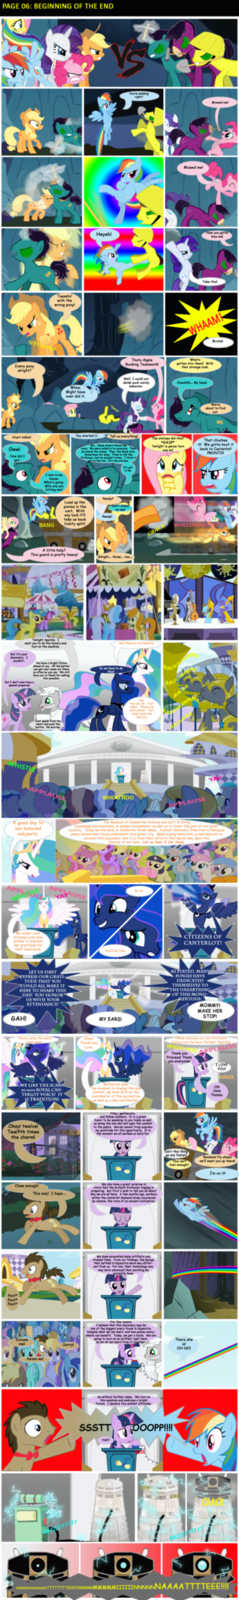 doctor_whooves__elder_page_06_by_shwiggityshwah-d4hbpi5.png